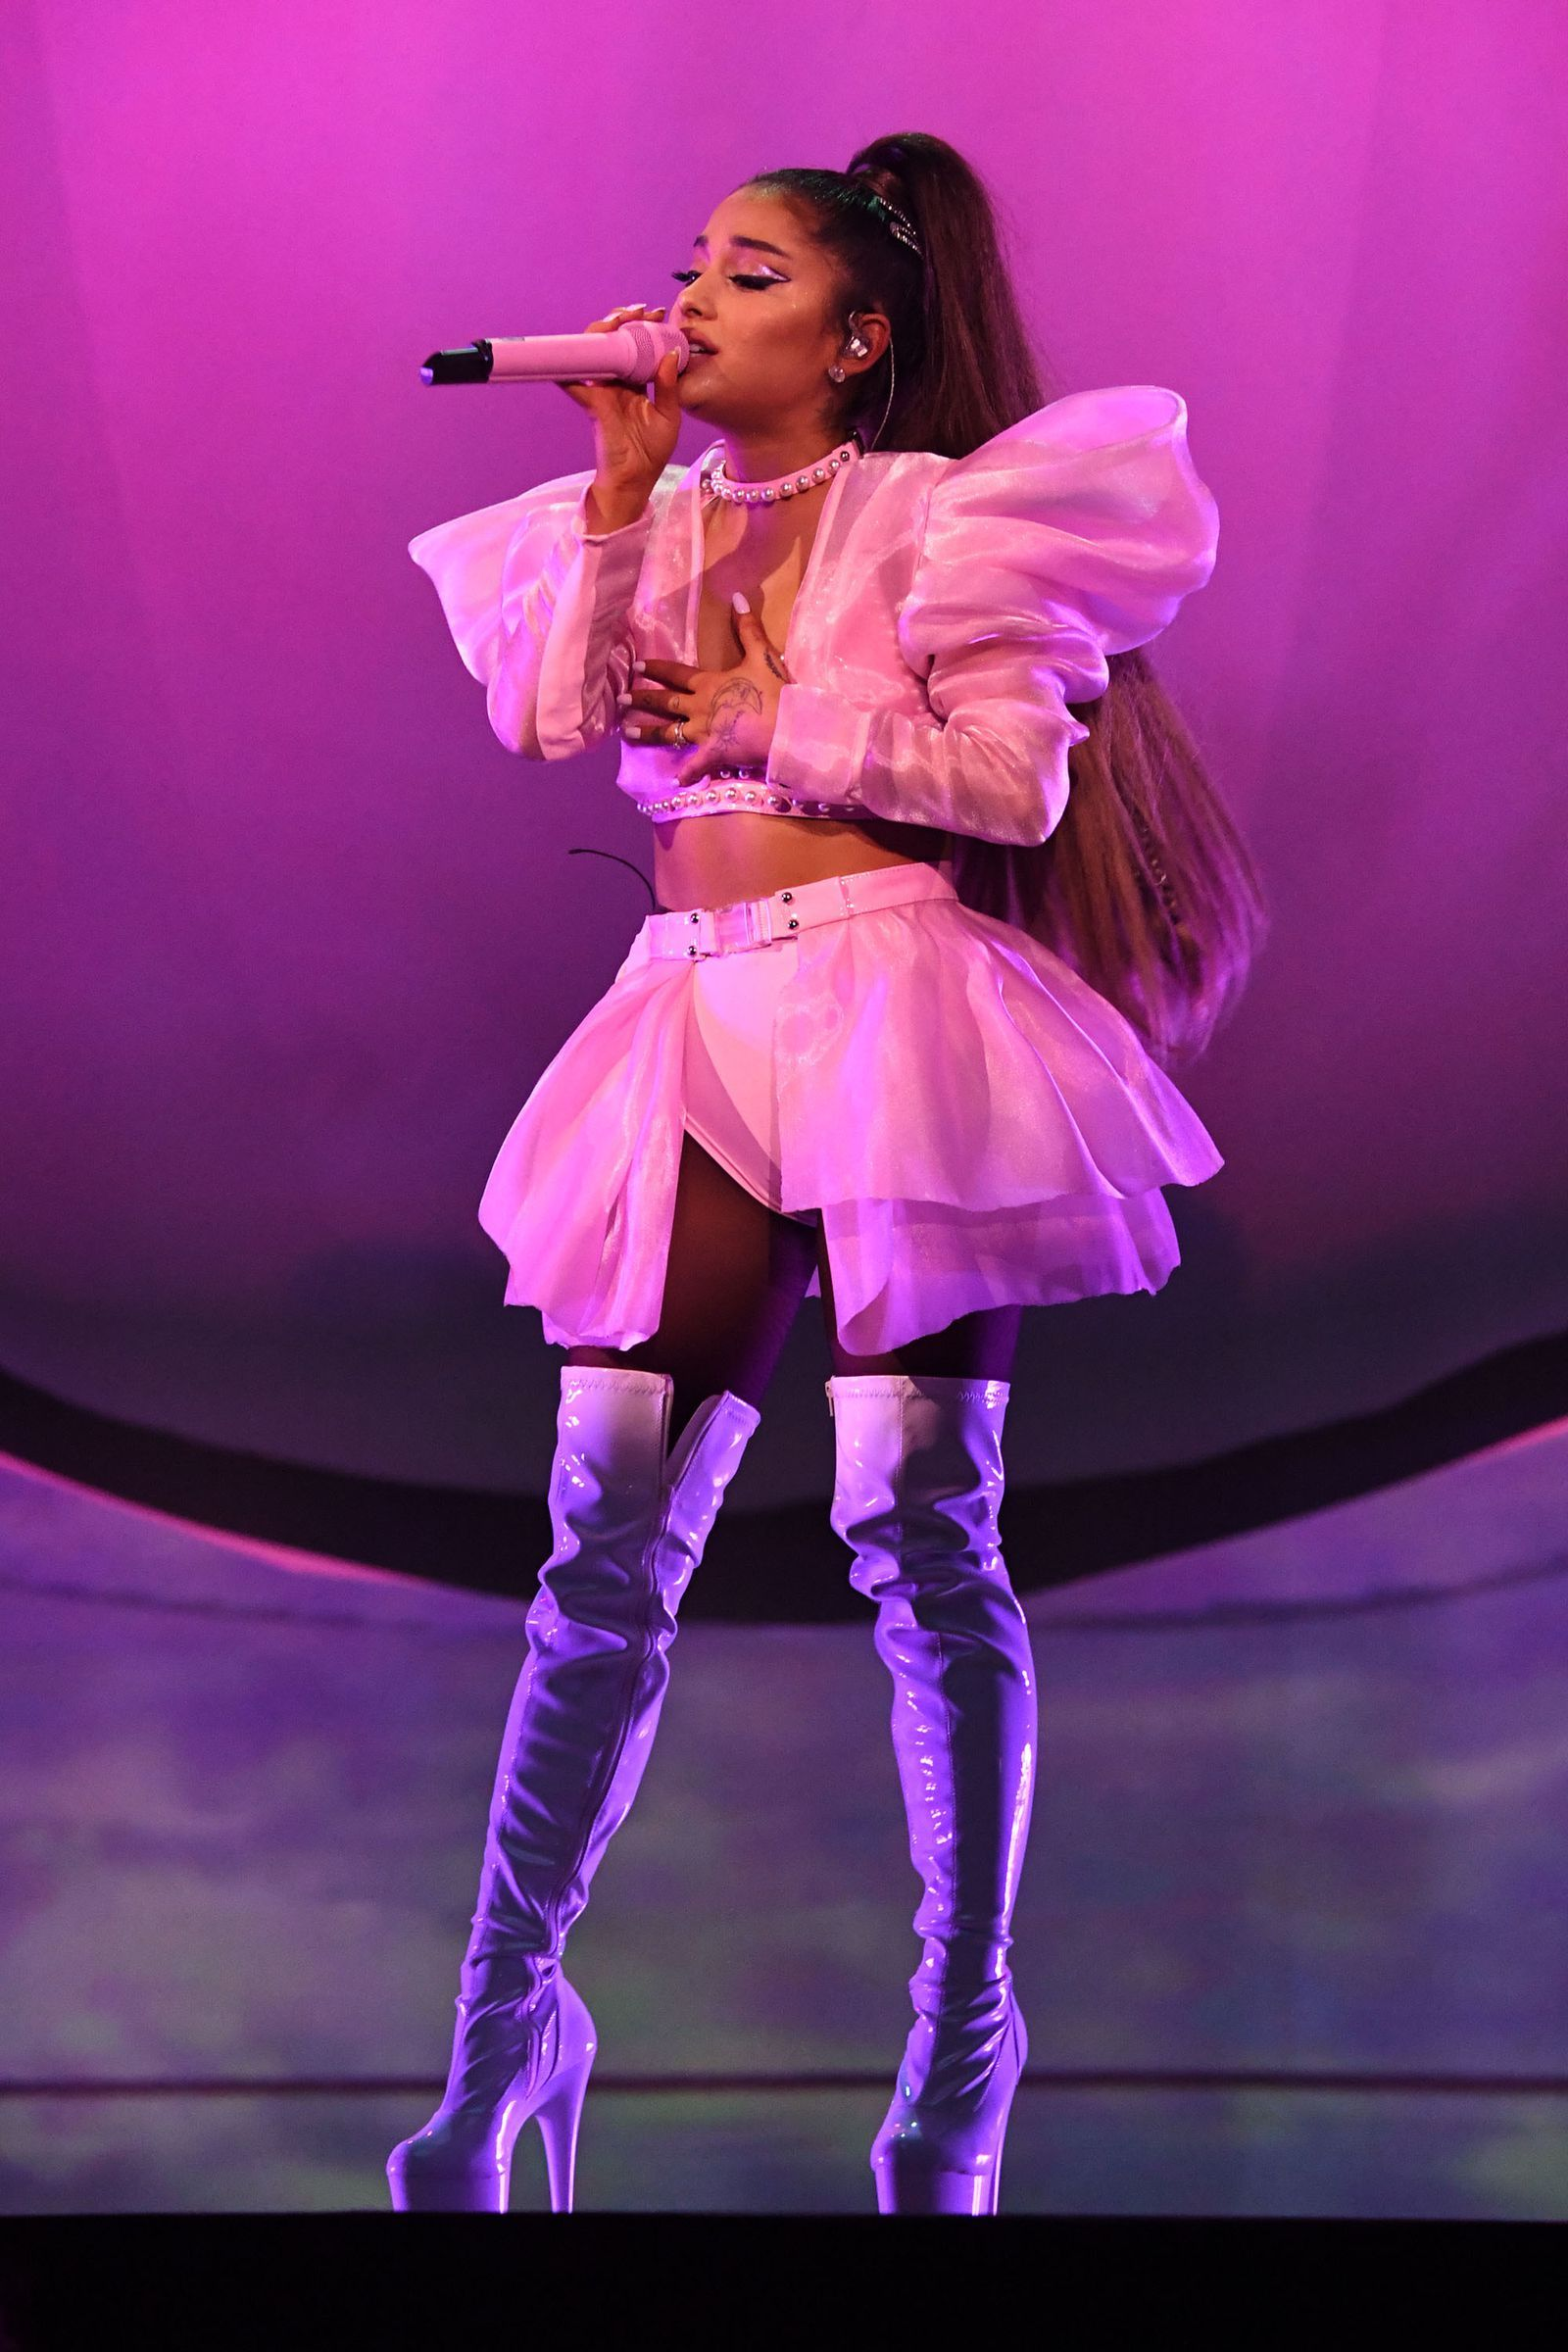 Ariana Grande's First 'Sweetener' Concert: 7 Costume Changes, Wild Choreography, and a Mac Miller Tribute #arianagrande